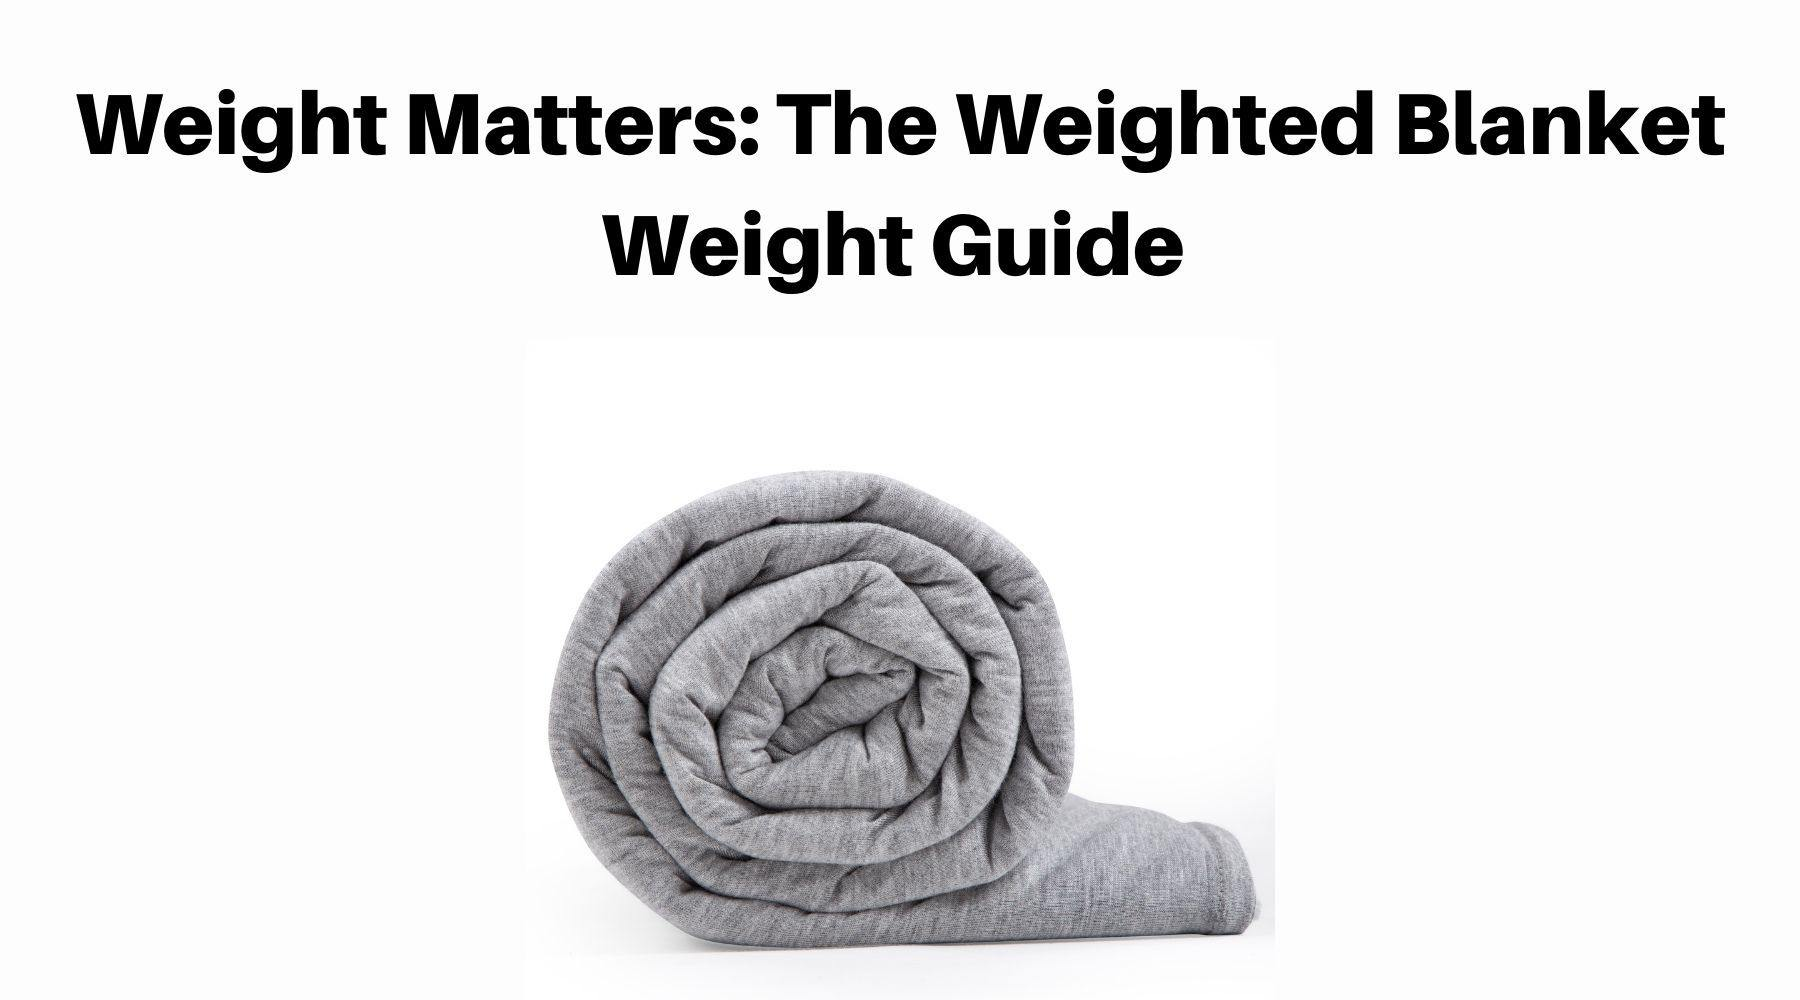 Weight Matters The Weighted Blanket Weight Guide [2021]